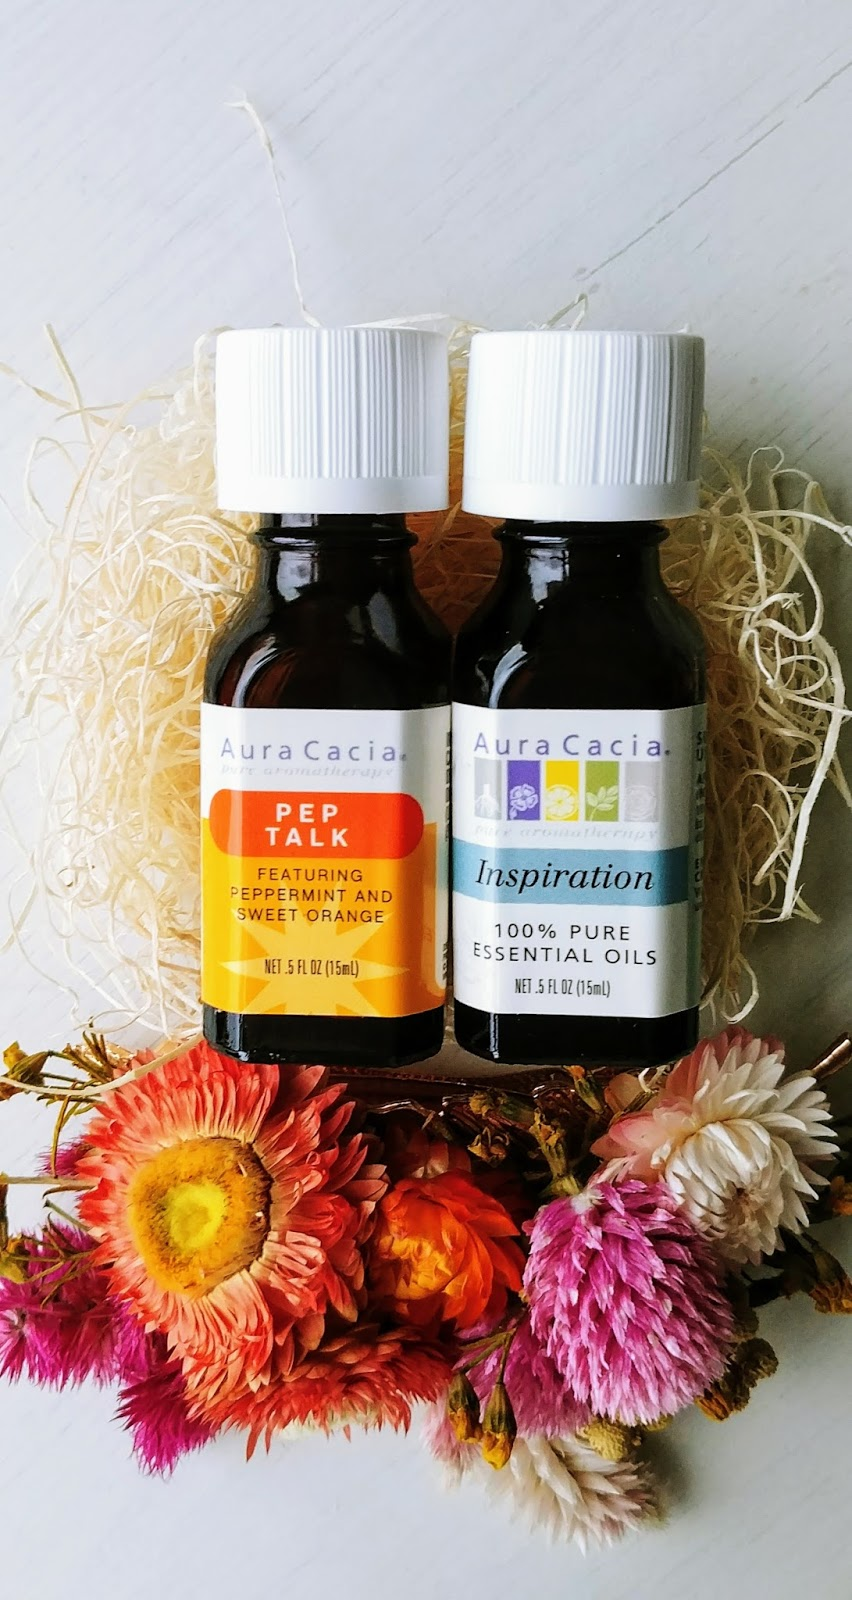 Aura Cacia Essential Oils for the winter